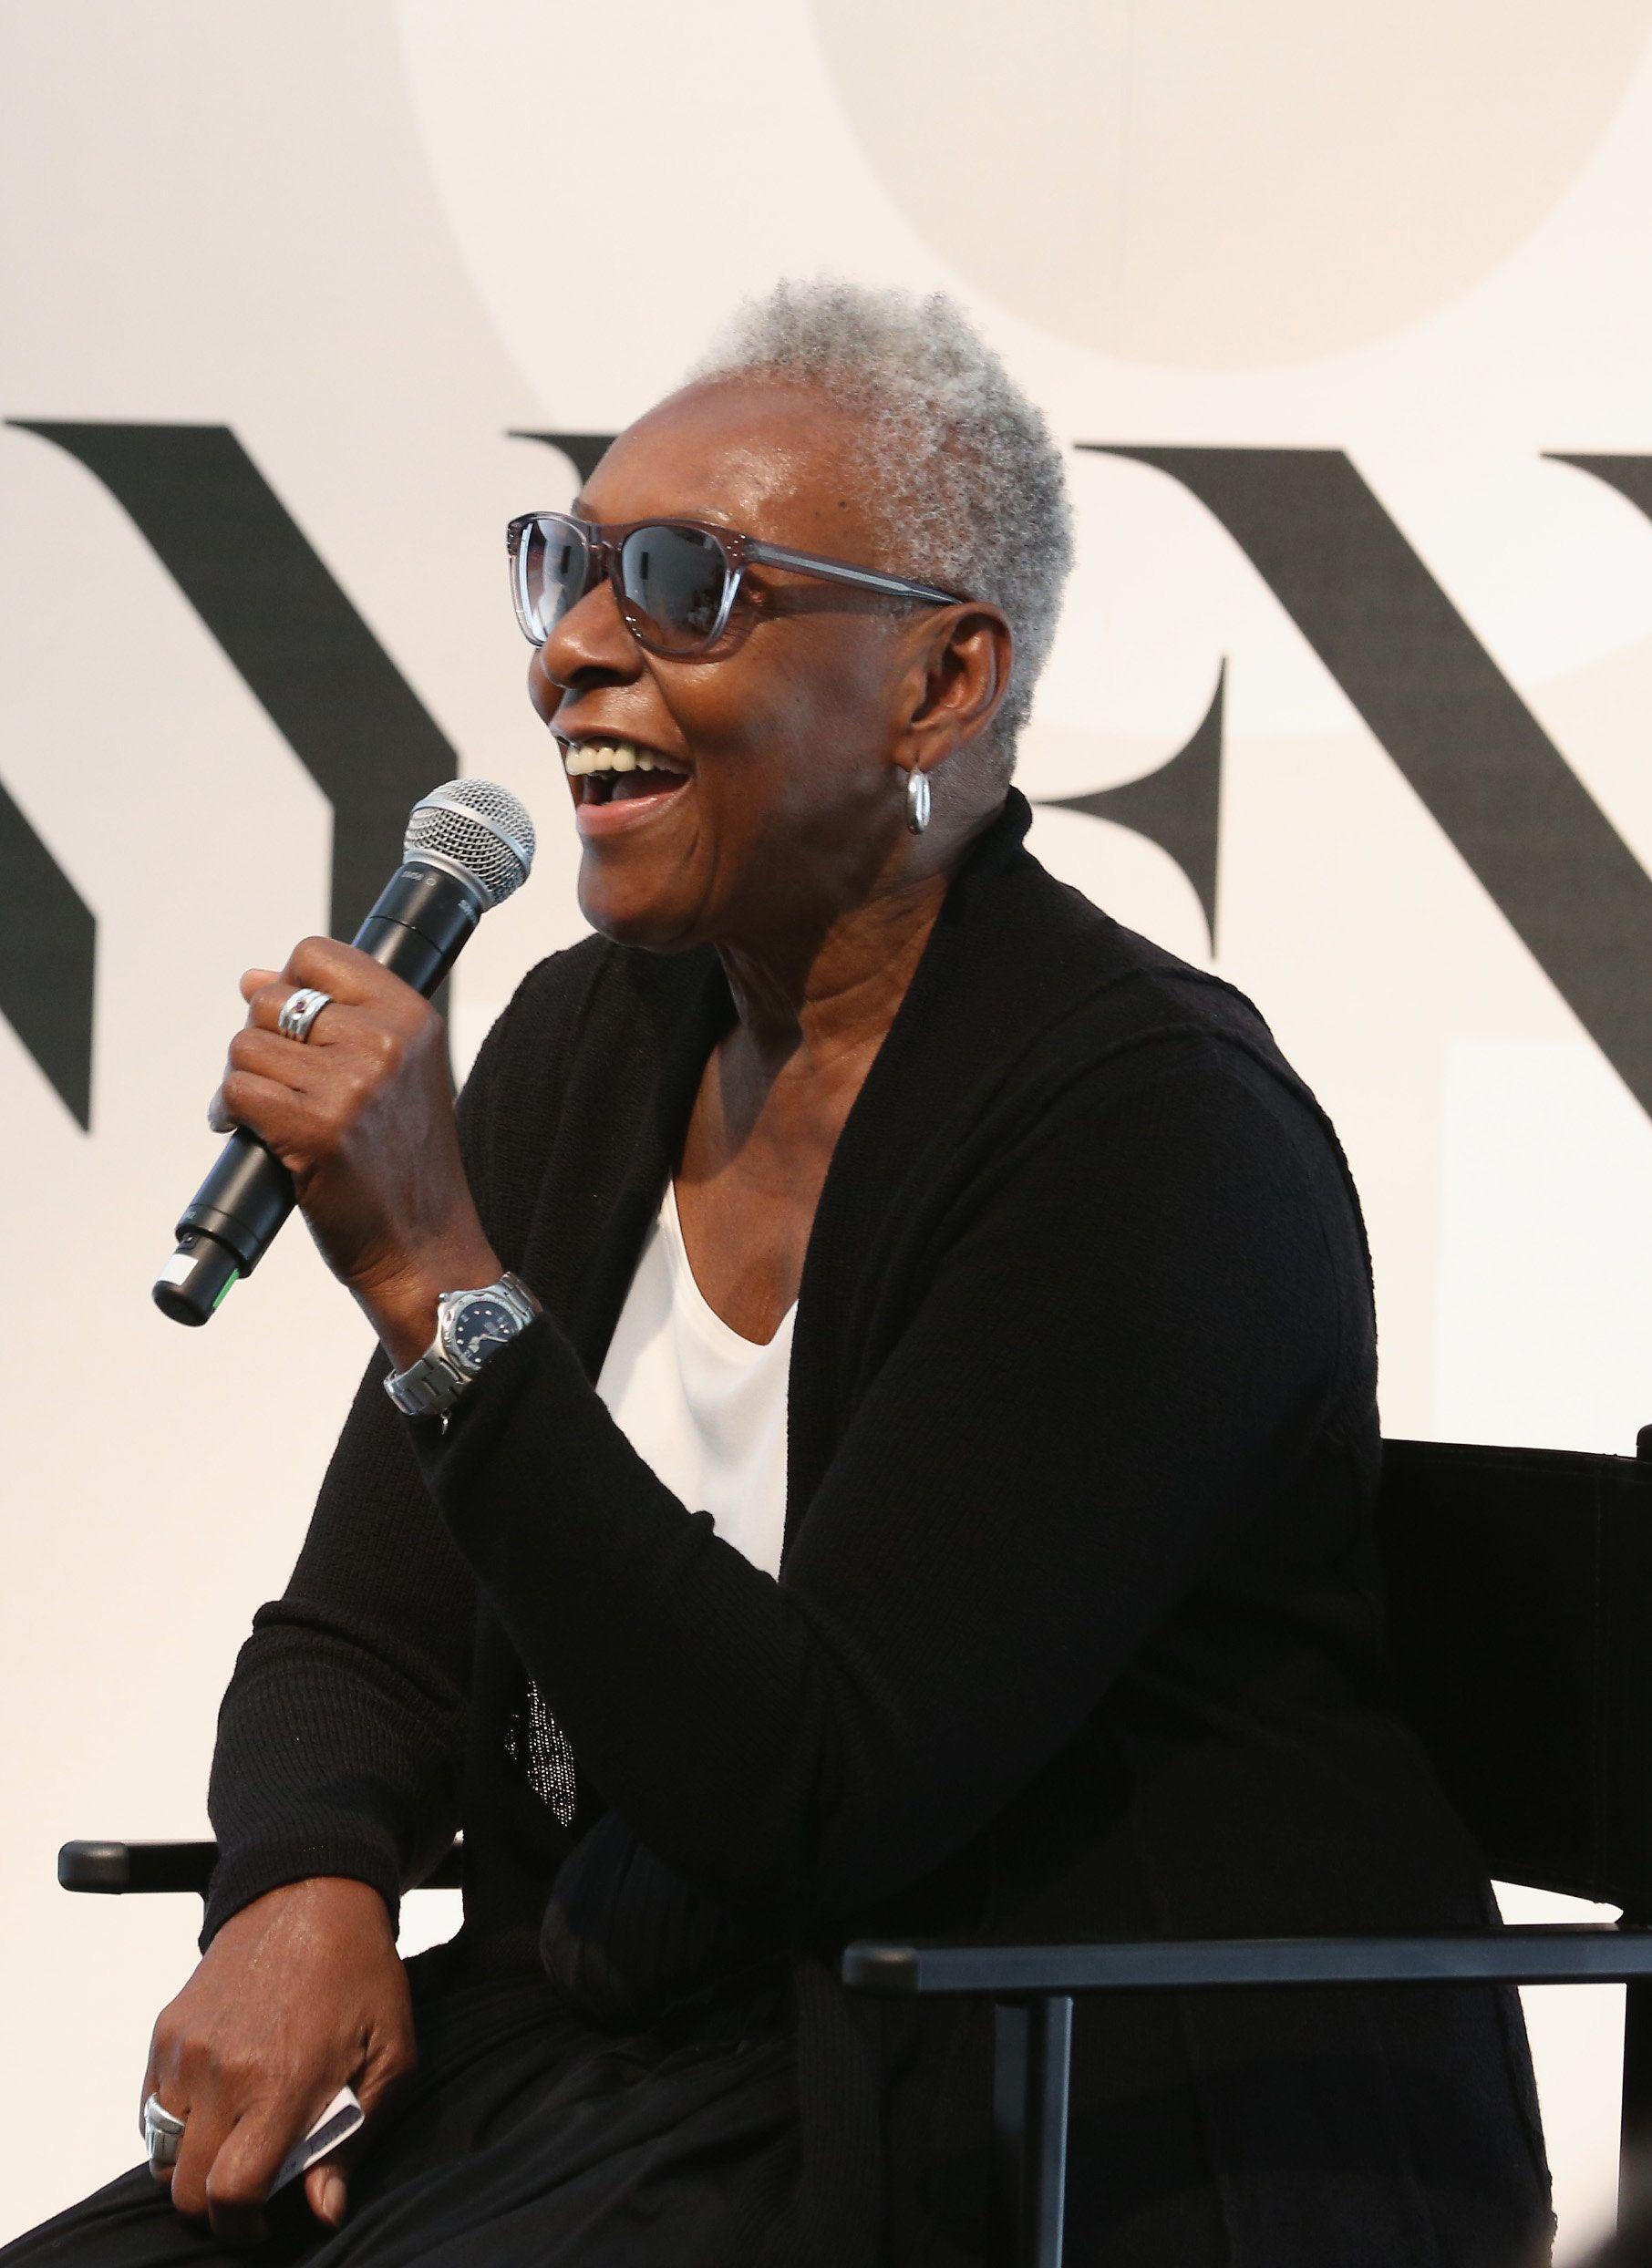 NEW YORK, NY - SEPTEMBER 14:  Bethann Hardison speaks on stage during Spring 2016 New York Fashion Week: The Shows - Day 5 at NYFW: The Shows HQ on September 14, 2015 in New York City.  (Photo by Robin Marchant/Getty Images)